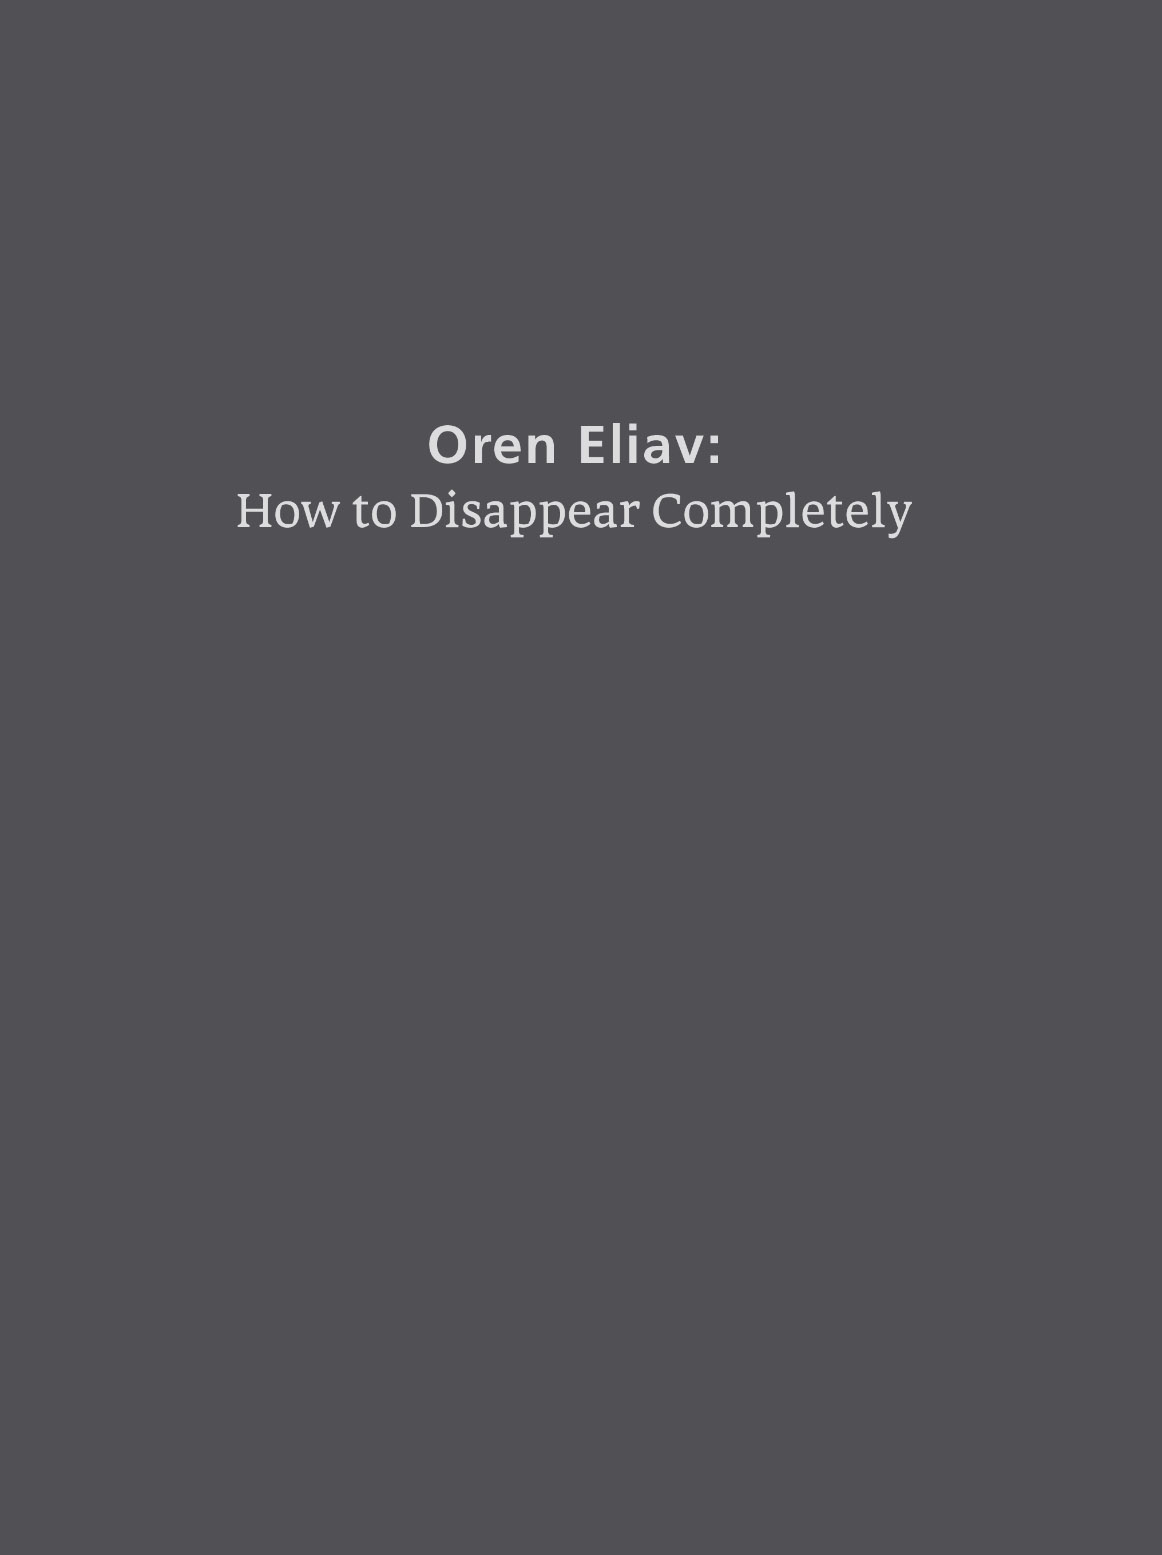 Oren Eliav: How To Disappear Completely